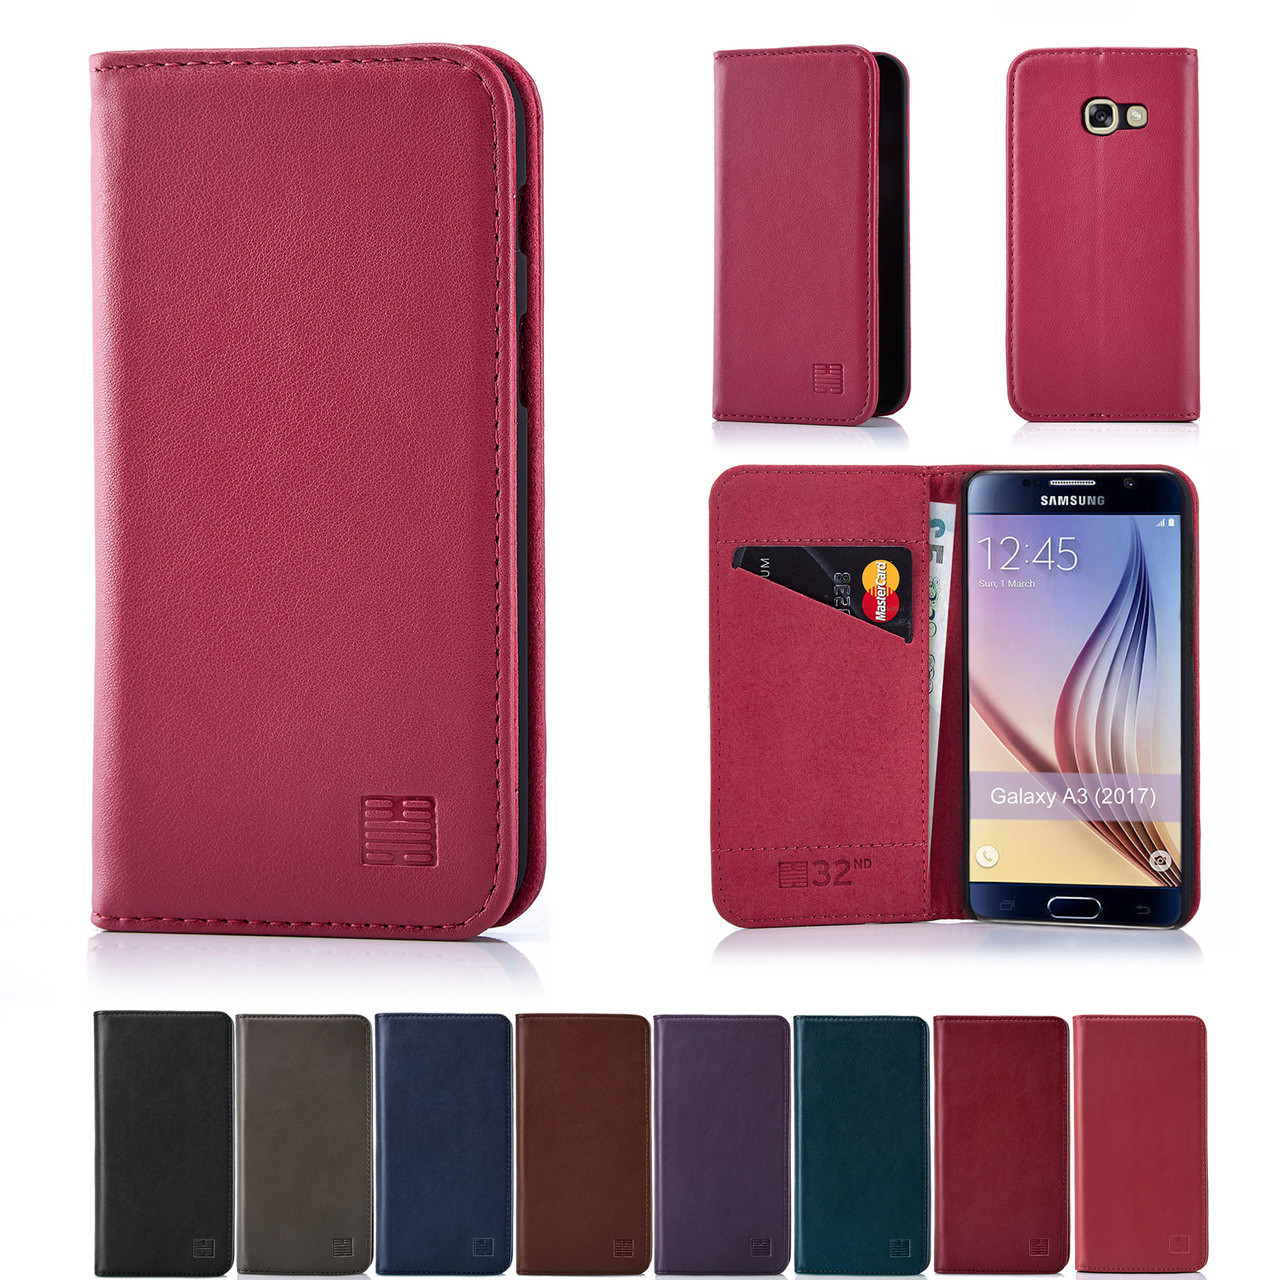 half off 57b0b 336c4 Samsung Galaxy A3 (2017) Classic Real Leather Book Wallet Case